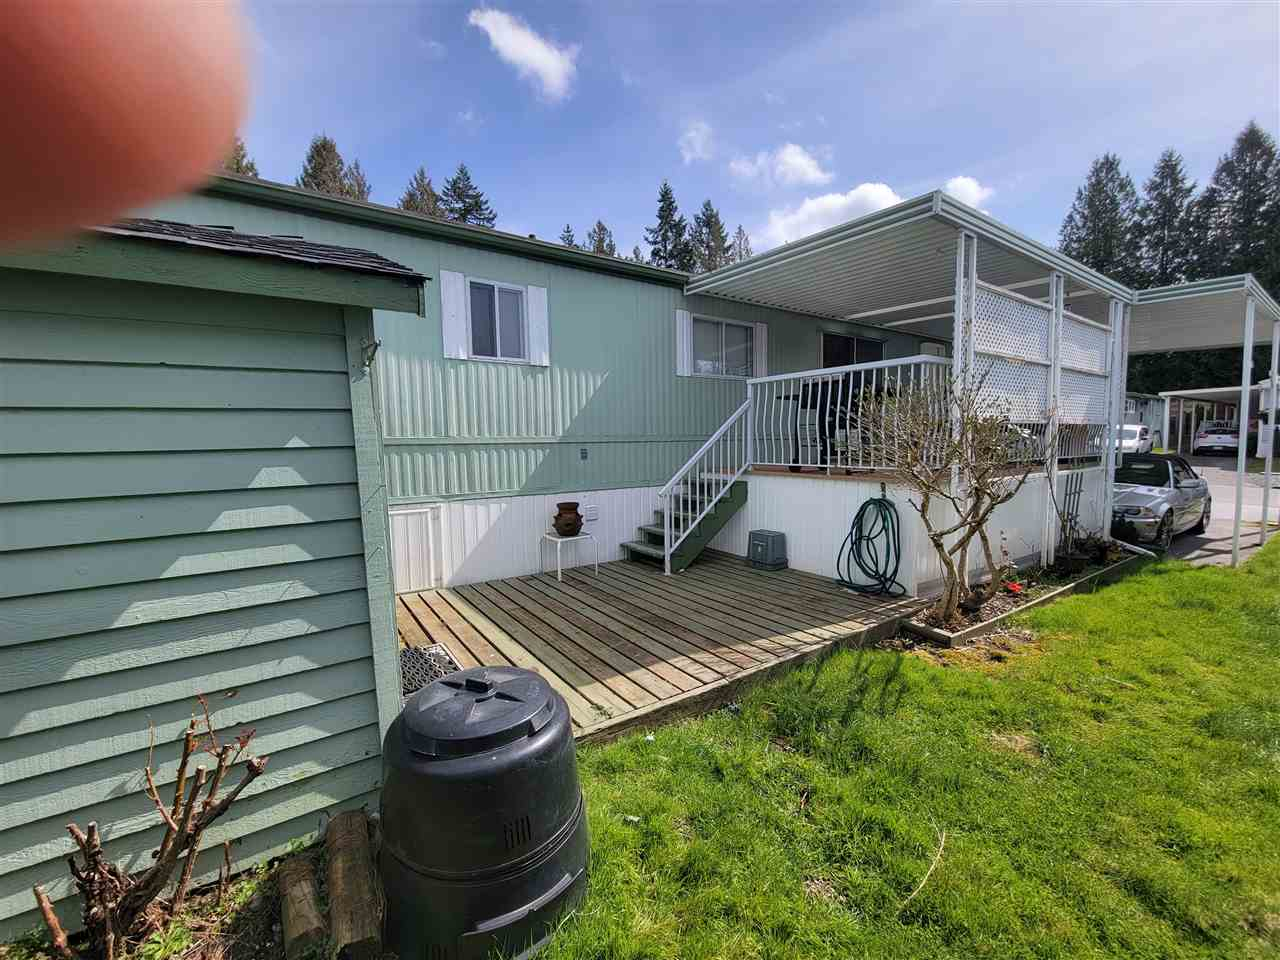 41 2315 198 STREET - Brookswood Langley Manufactured for sale, 2 Bedrooms (R2560334) - #17